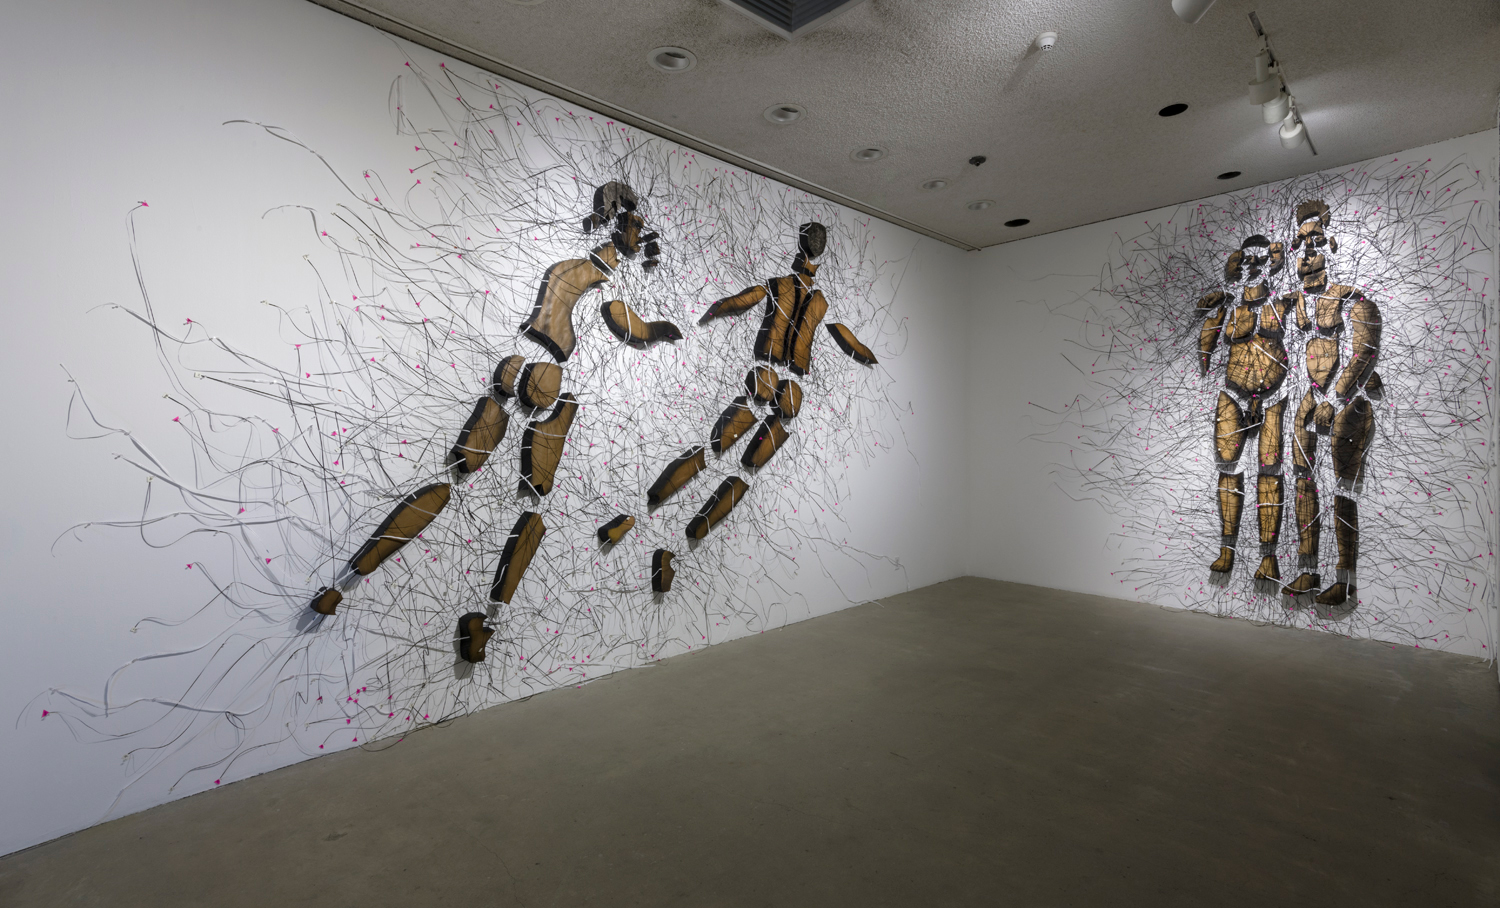 In this artwork installation by the artist Enrique Castrejon, there are a total of four figural sculptures hanging on the walls. There are two figural sculptures depicting naked men of color, with a small amount of space in between each body part on one wall. These two bodies are angled to the right of the wall as if they are in motion. There are also various strands of string attached to these figures. To the right of these sculptures are two more figural sculptures hanging on the wall. These sculptures also depicted naked men of color, and are placed very close to each other and appear to be holding each other. There are also various strands of string attached to both figures, and there is also a slight amount of spacing in between their body parts.